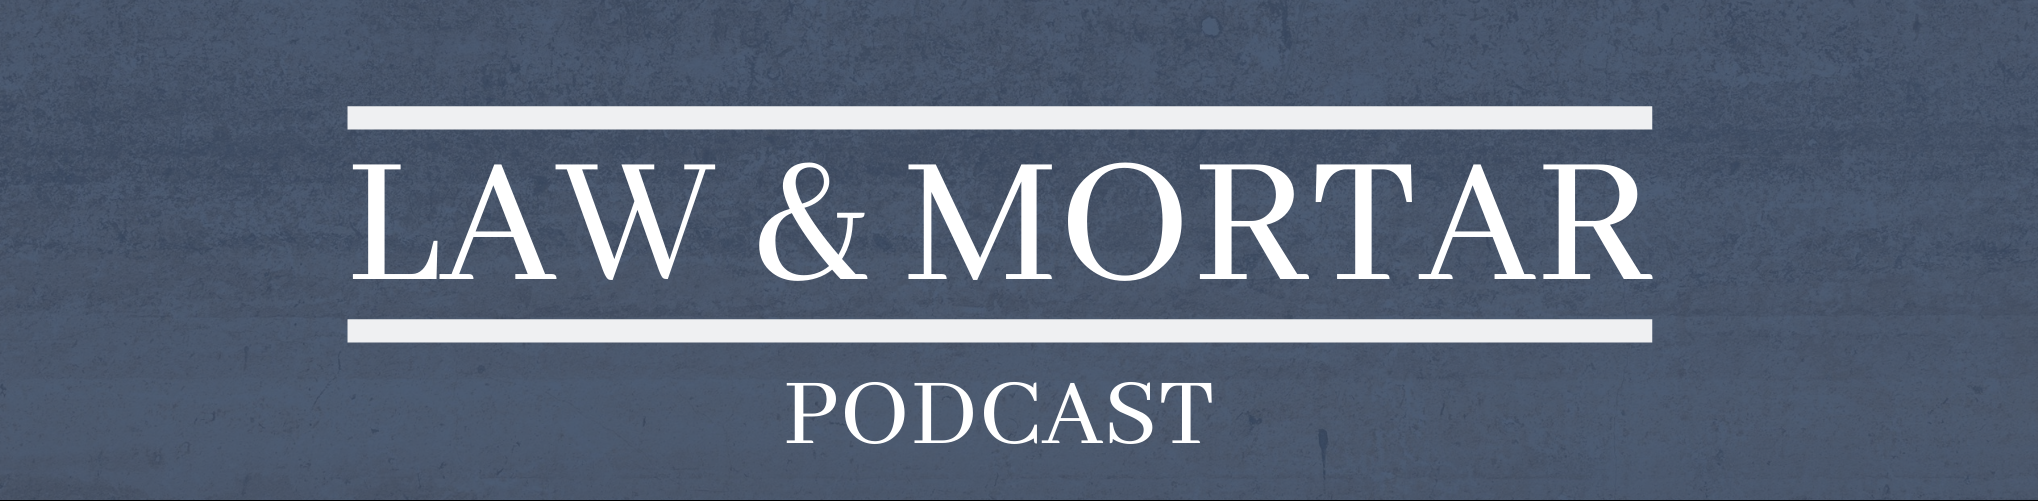 Law & Mortar Episode 29 featured image